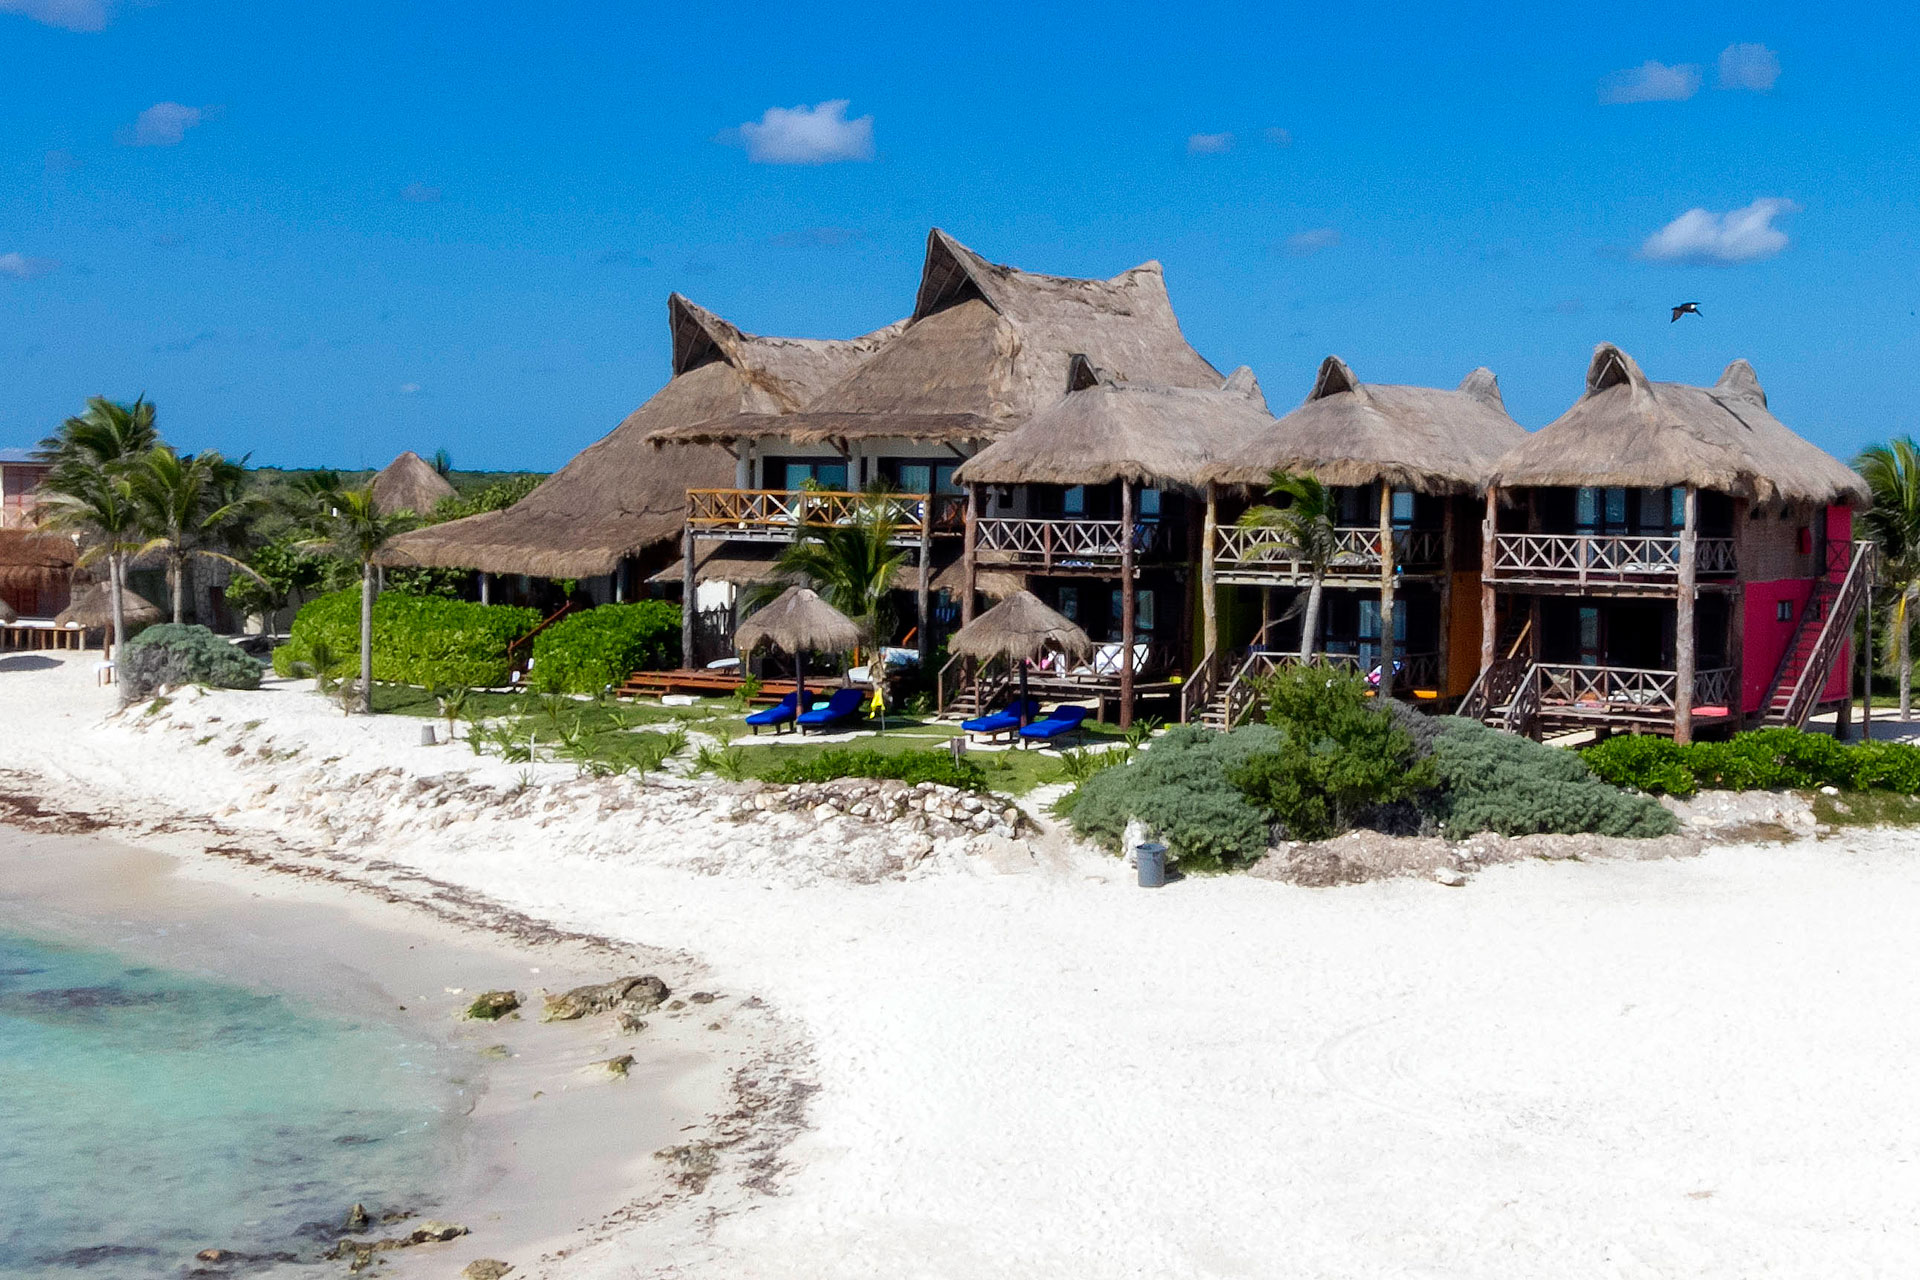 el Pez, Tulum, the beach